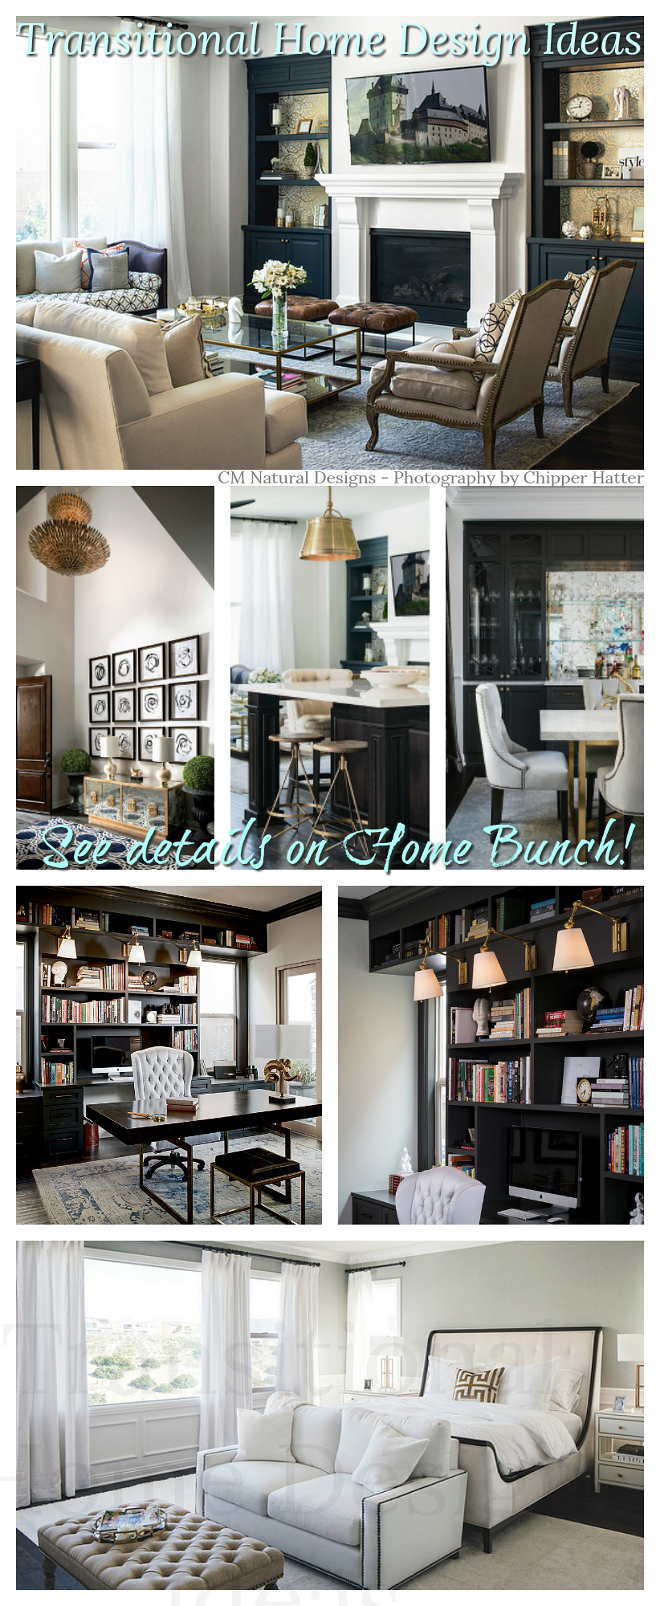 Transitional Home Design Ideas see sources on Home Bunch #TransitionalHomeDesignIdeas